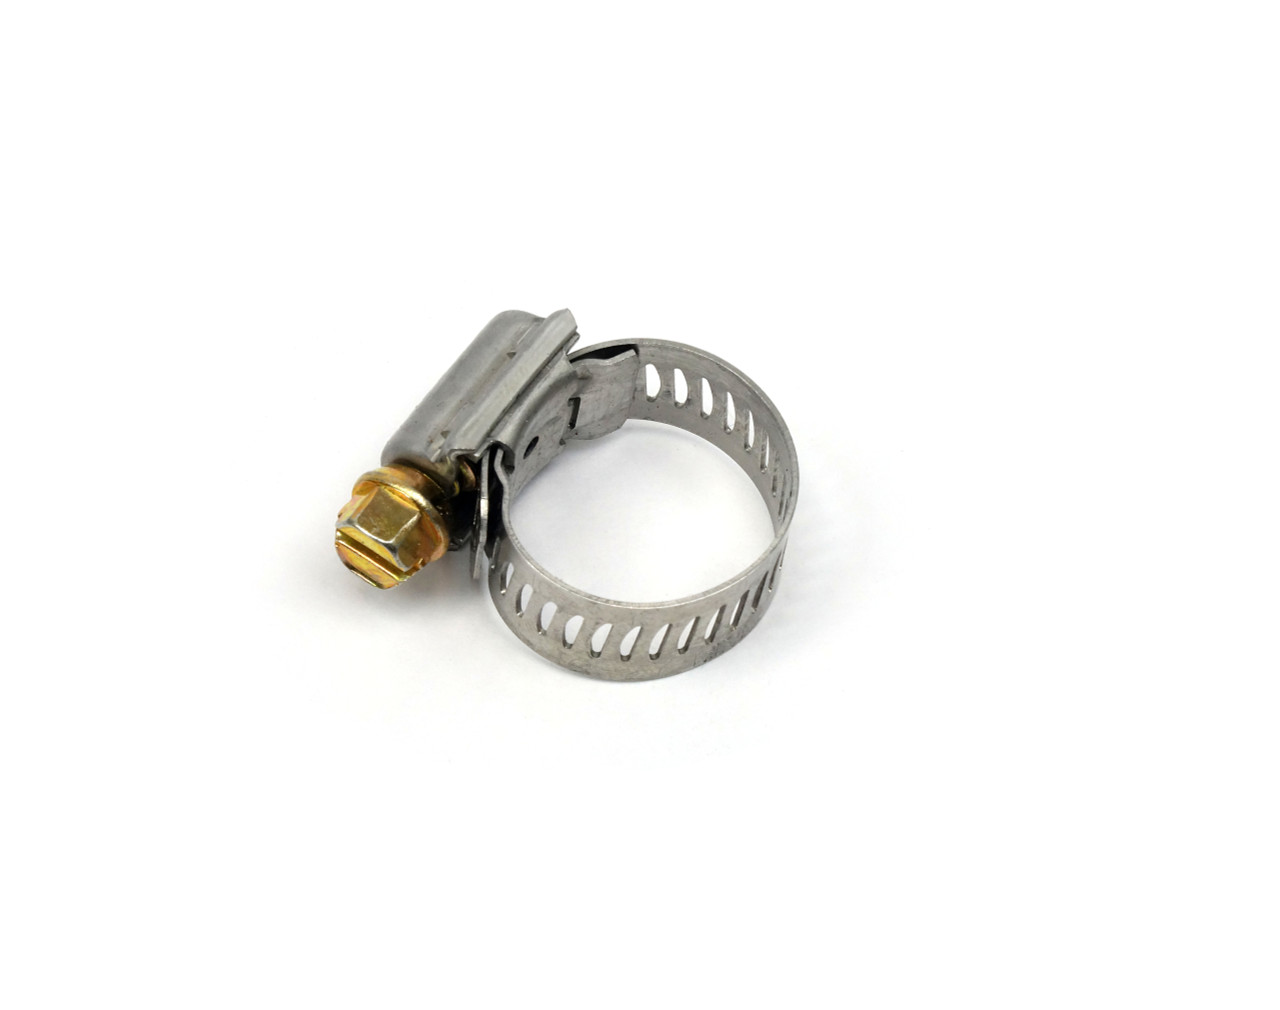 Radiator hose clamp - Auto Ricambi FIAT 124 Spider, Sport Coupe, Spider 2000 and Pininfarina - 1966-1985